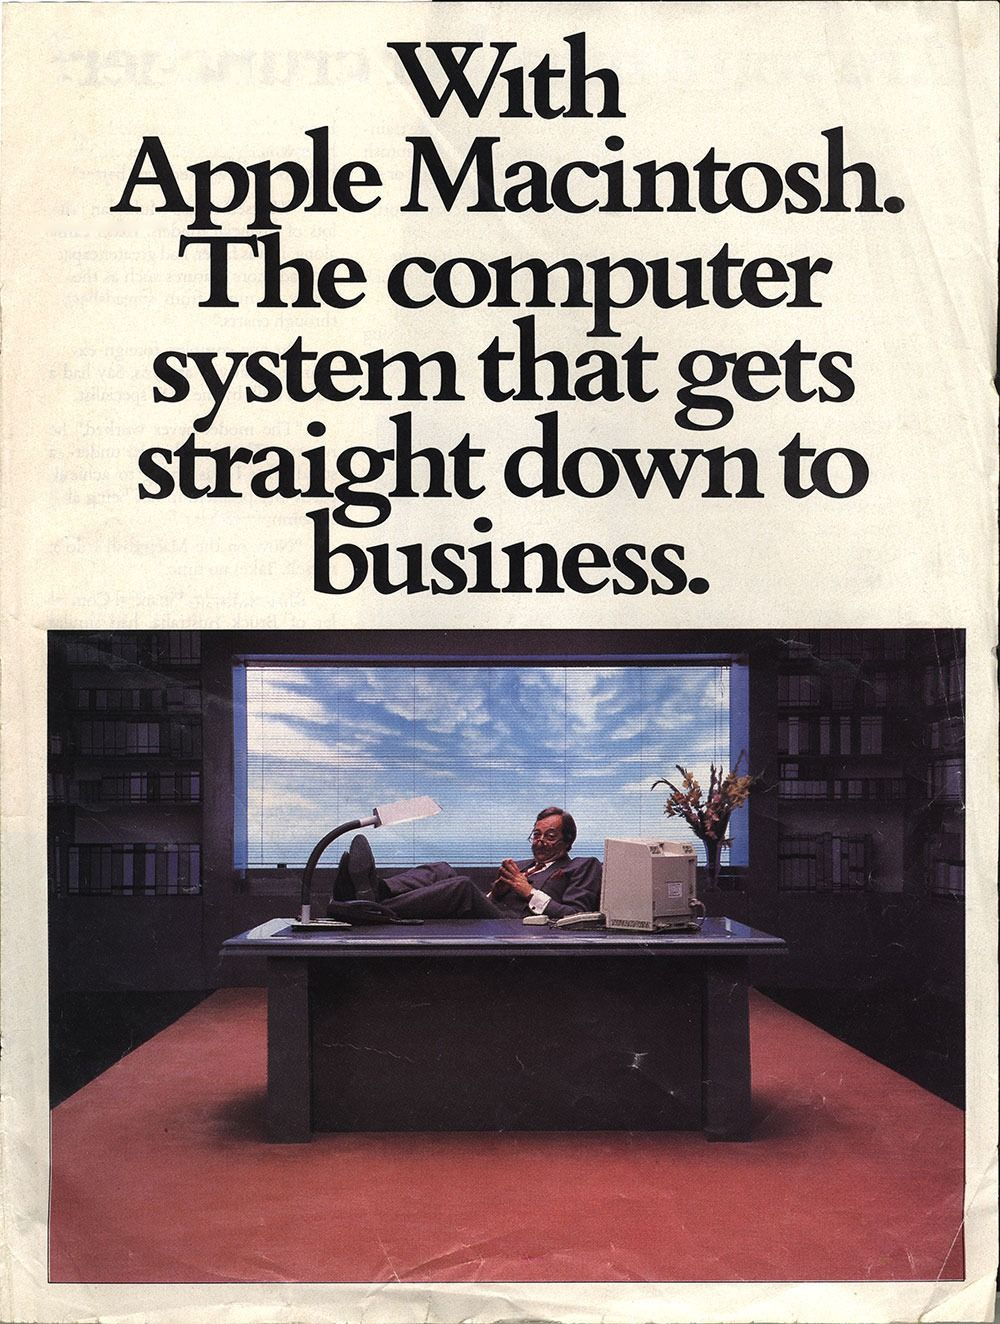 In these vintage tech ads, the computers and gadgets are way larger and clunkier, the text's a straight-up cheese-fest, and the graphics are so totally '80s.